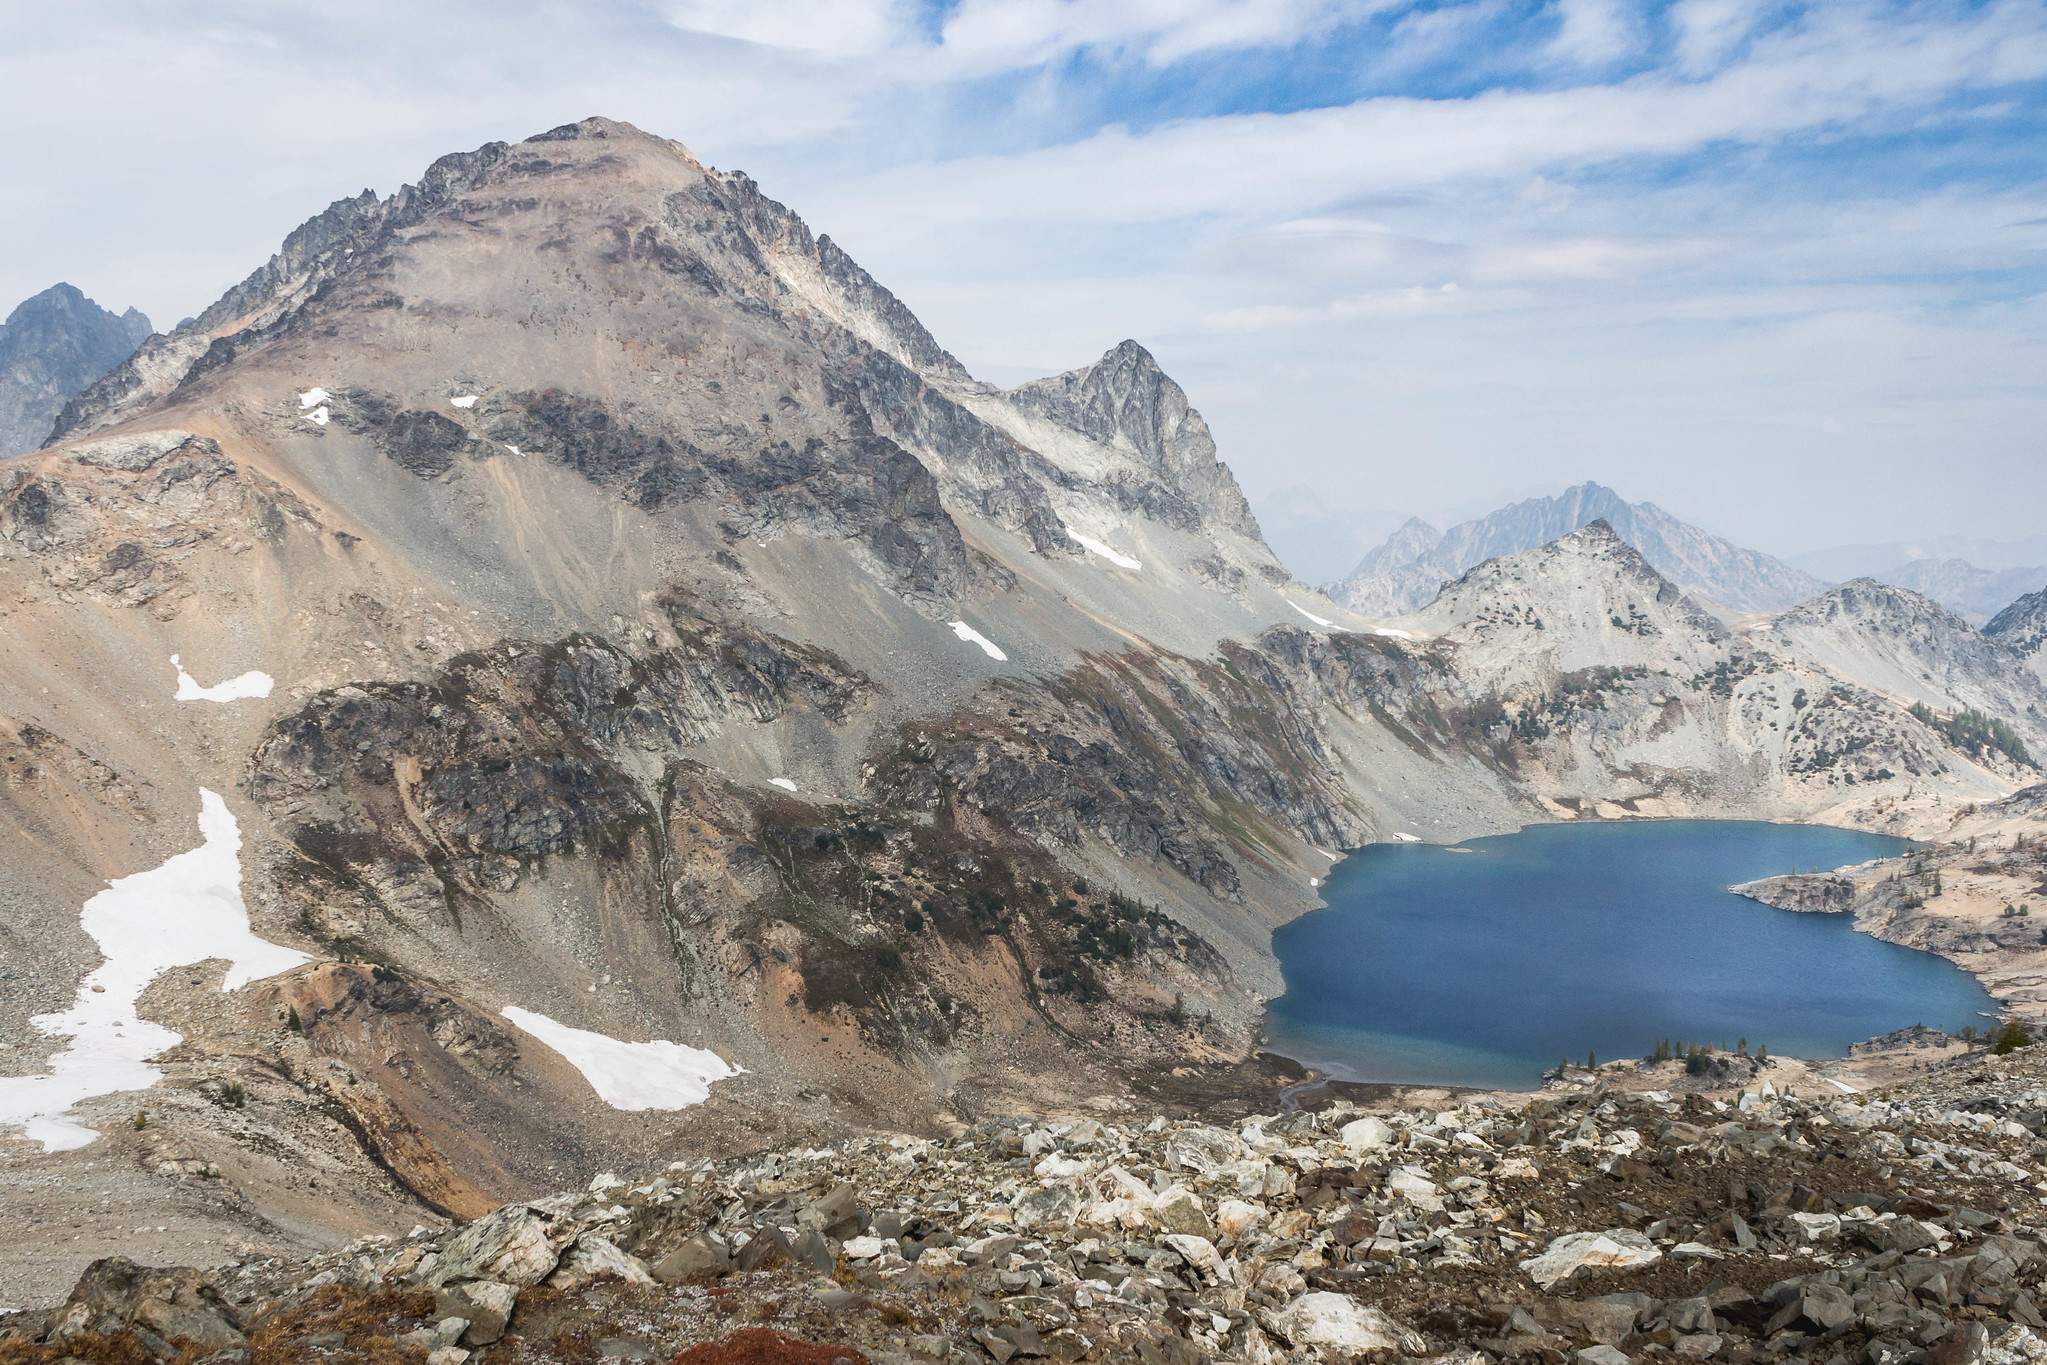 Mount Maude and Upper Ice Lake